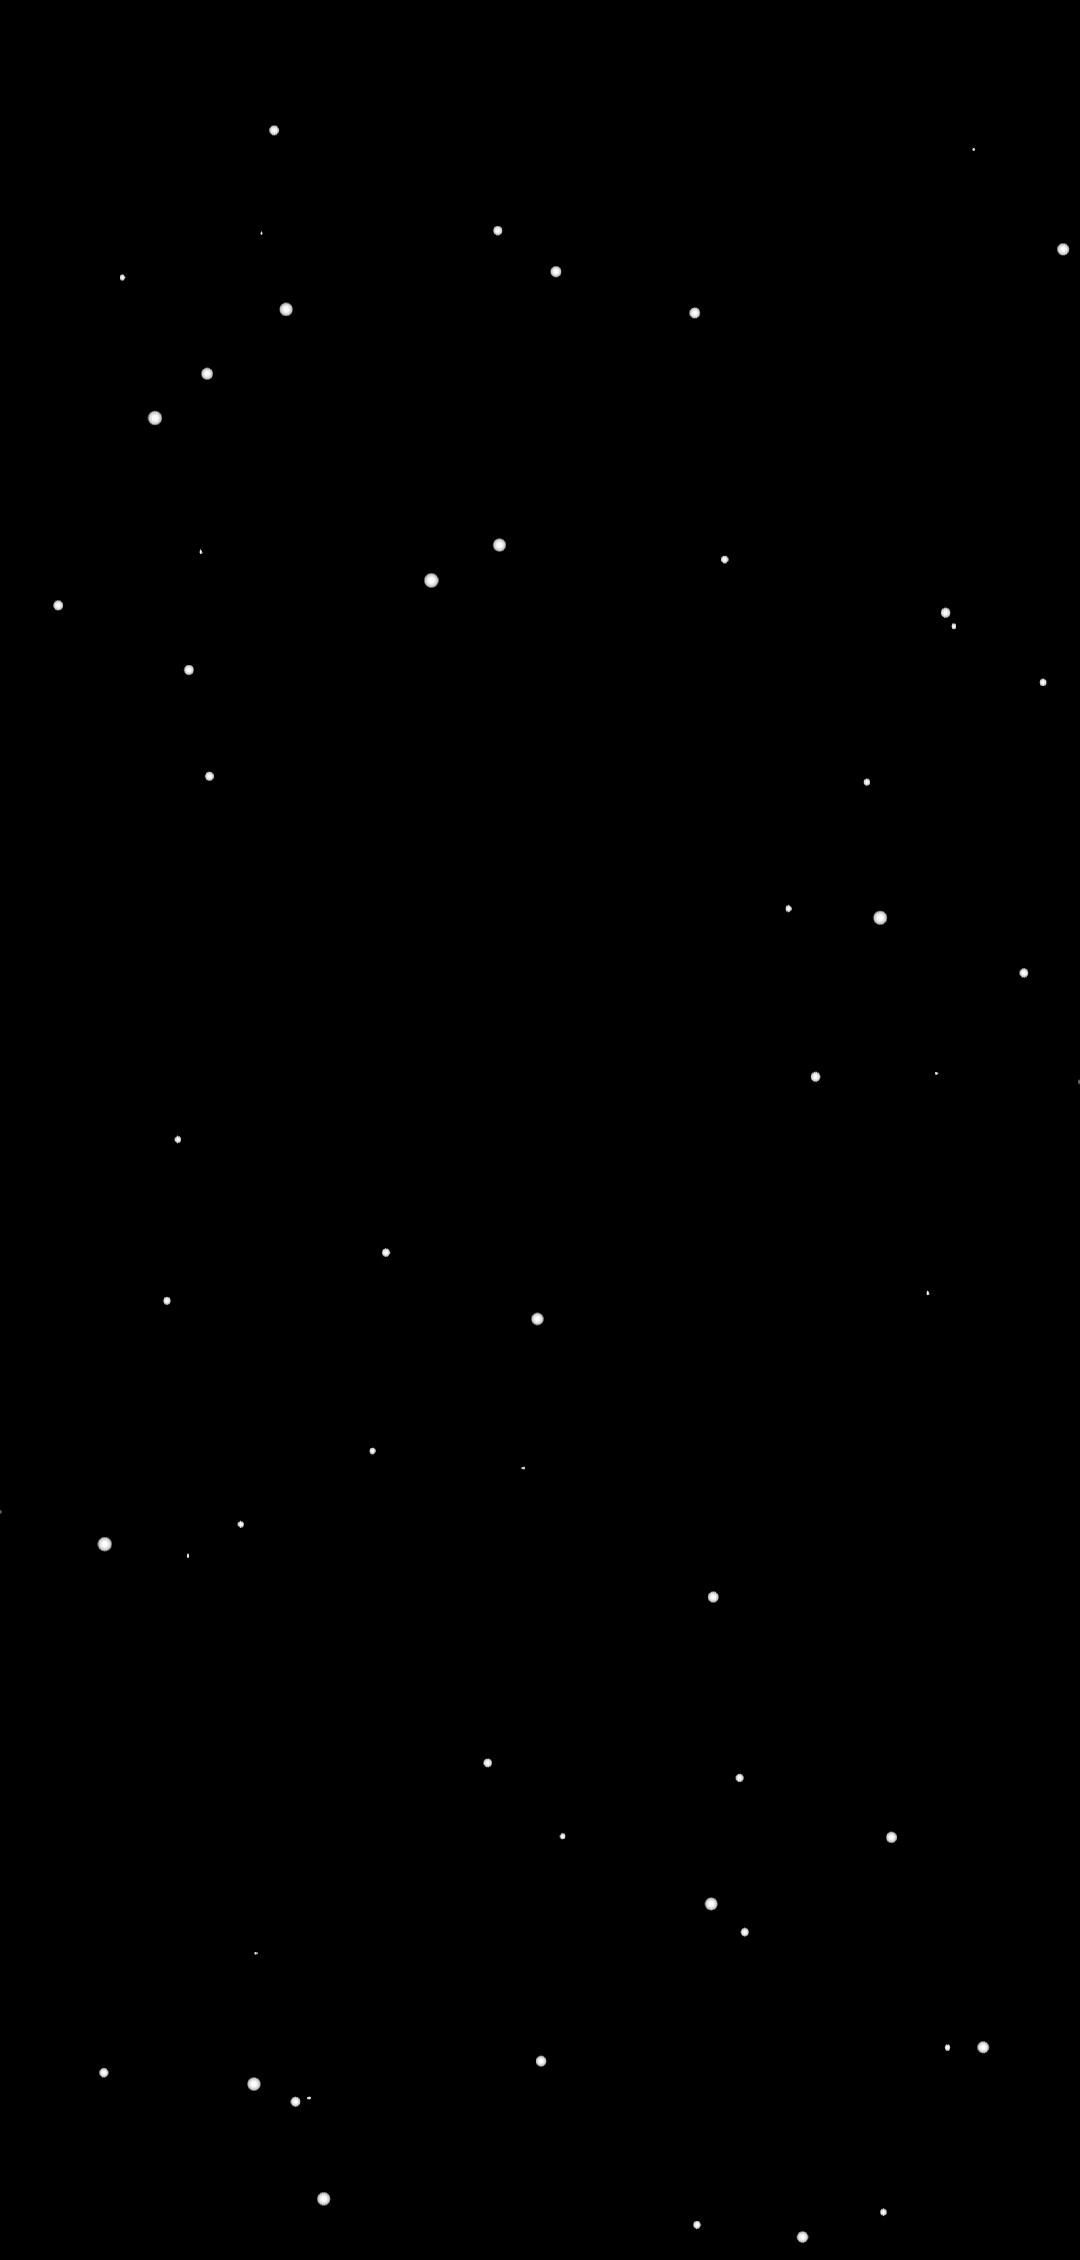 The Among Us Galaxy Without The Ejected Players For Better Amoled Effect Cartoon Wallpaper Iphone Art Wallpaper Iphone Iphone Wallpaper Sky